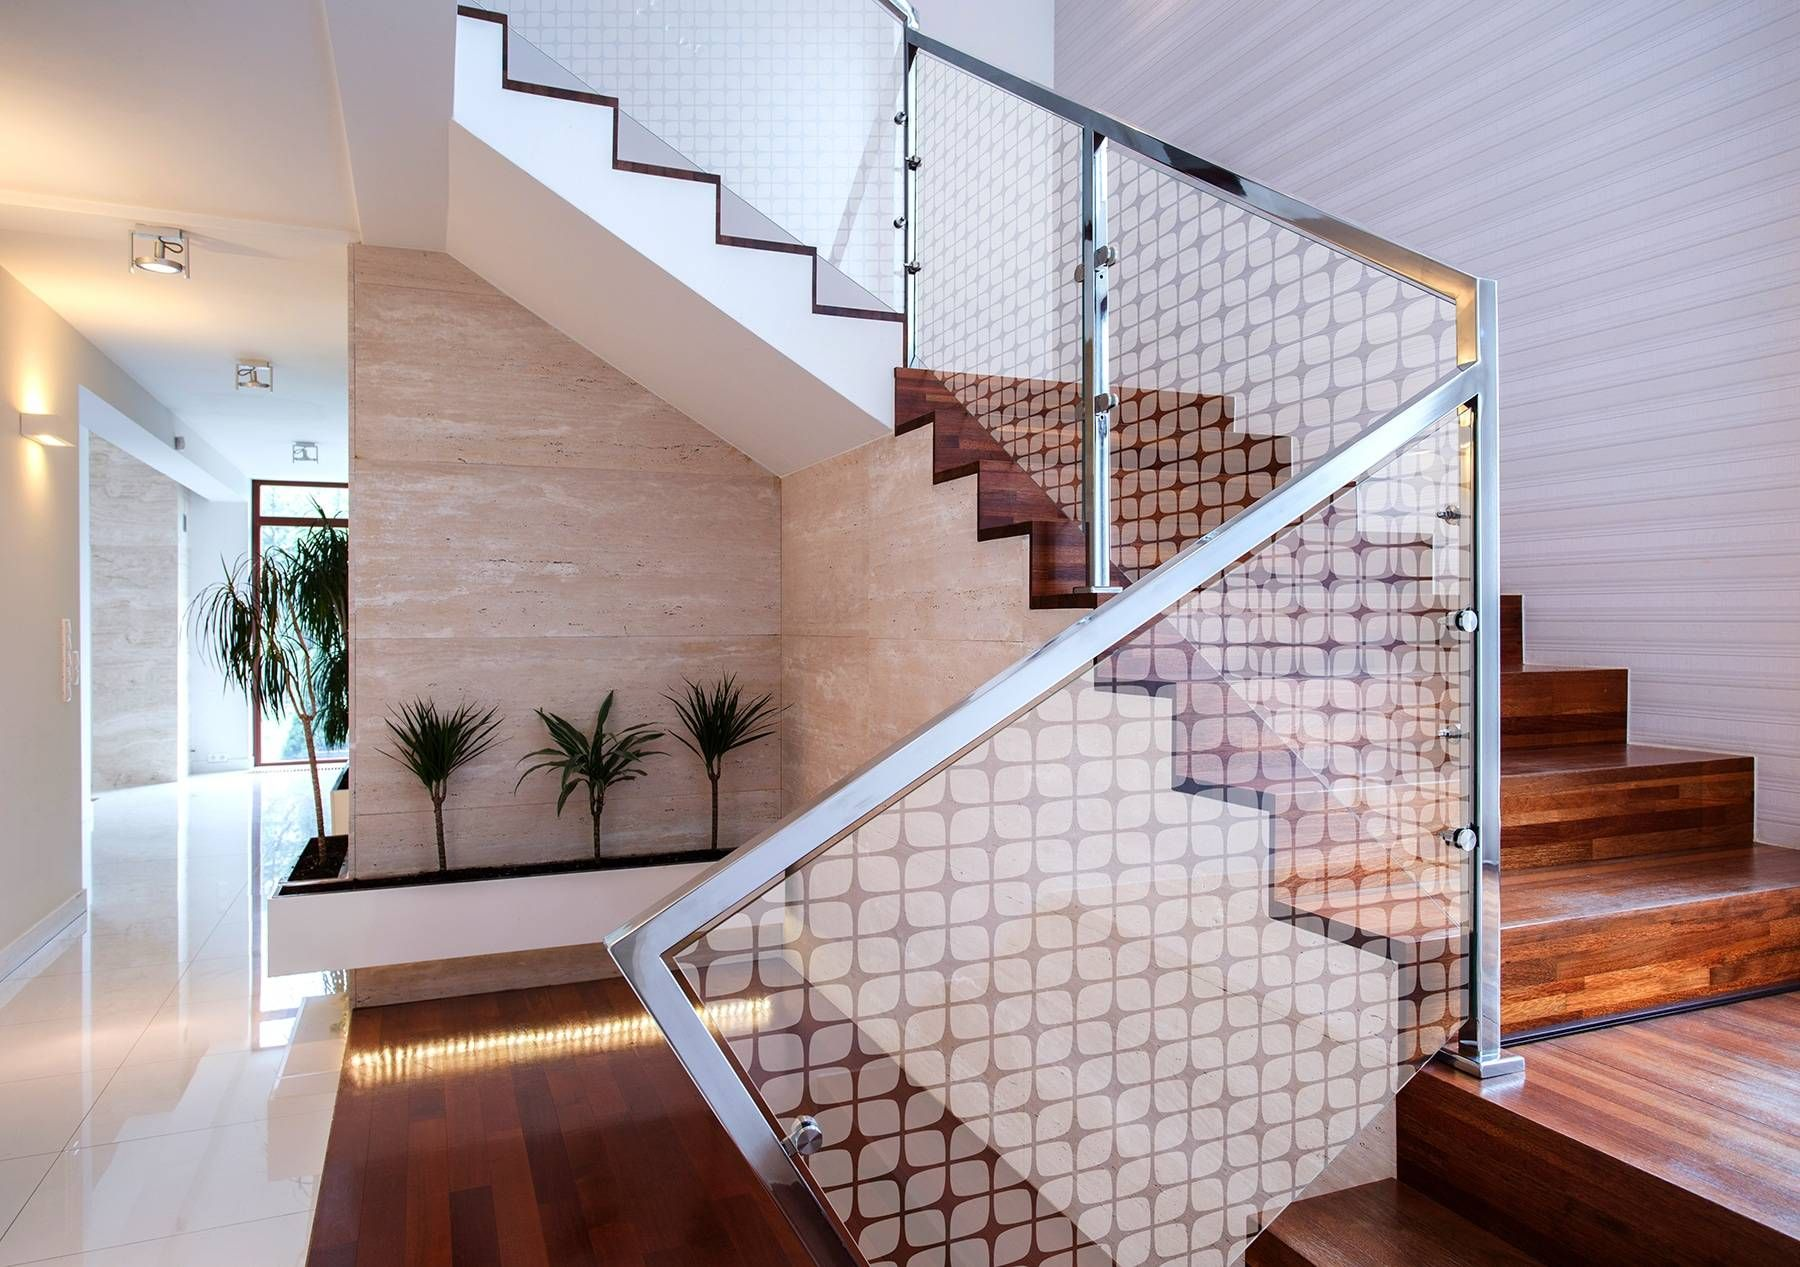 High Quality Frosted Clear Wall Panels In 2020 Interior Design Portfolios Residential Design Mid Century Modern Artwork